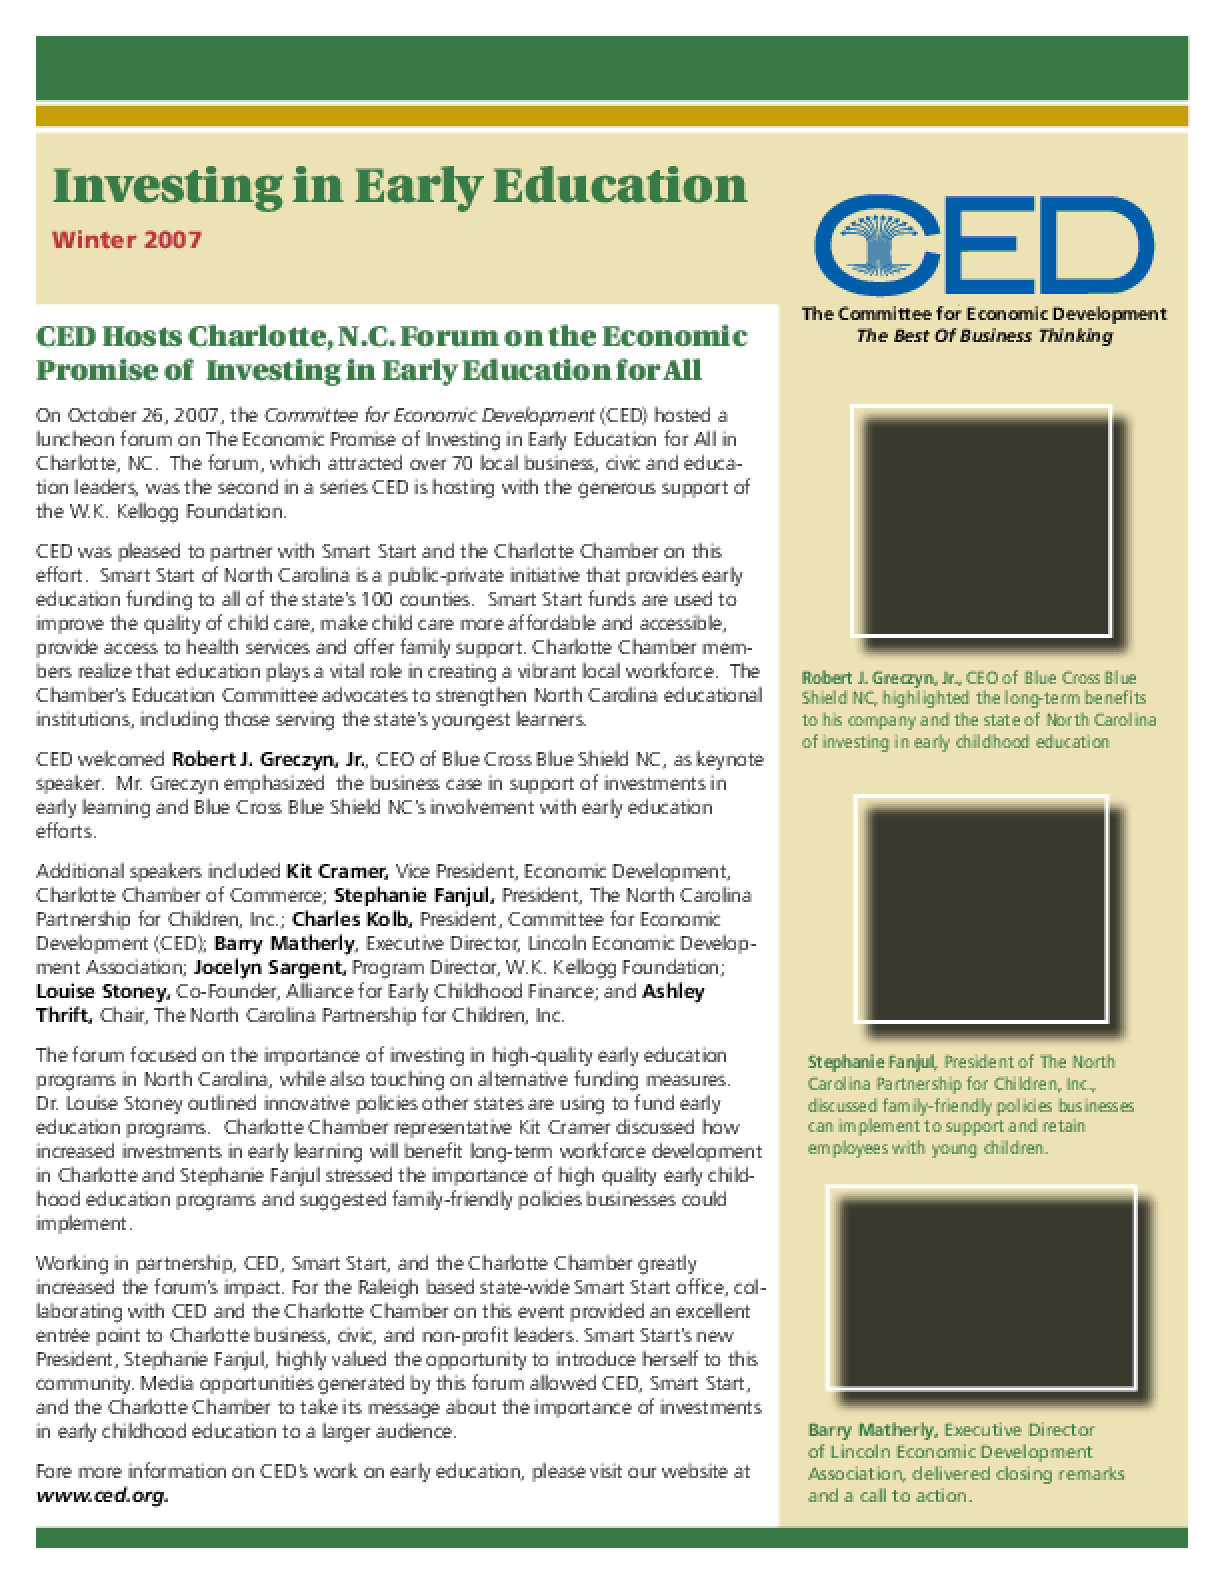 Investing in Early Education Newsletter: Winter 2007